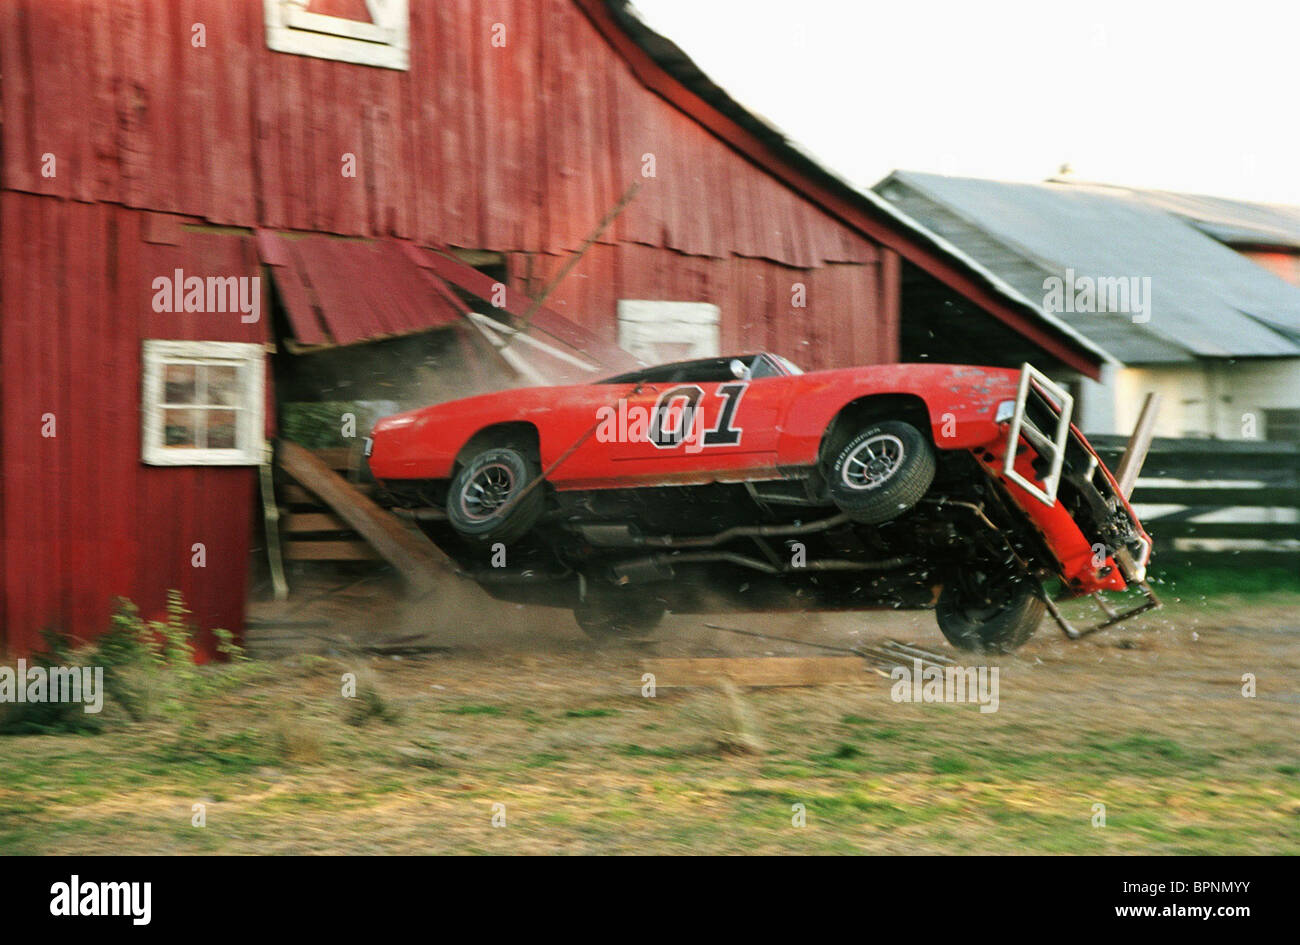 THE GENERAL LEE CRASHES THROUGH BARN THE DUKES OF HAZZARD ...  THE GENERAL LEE...